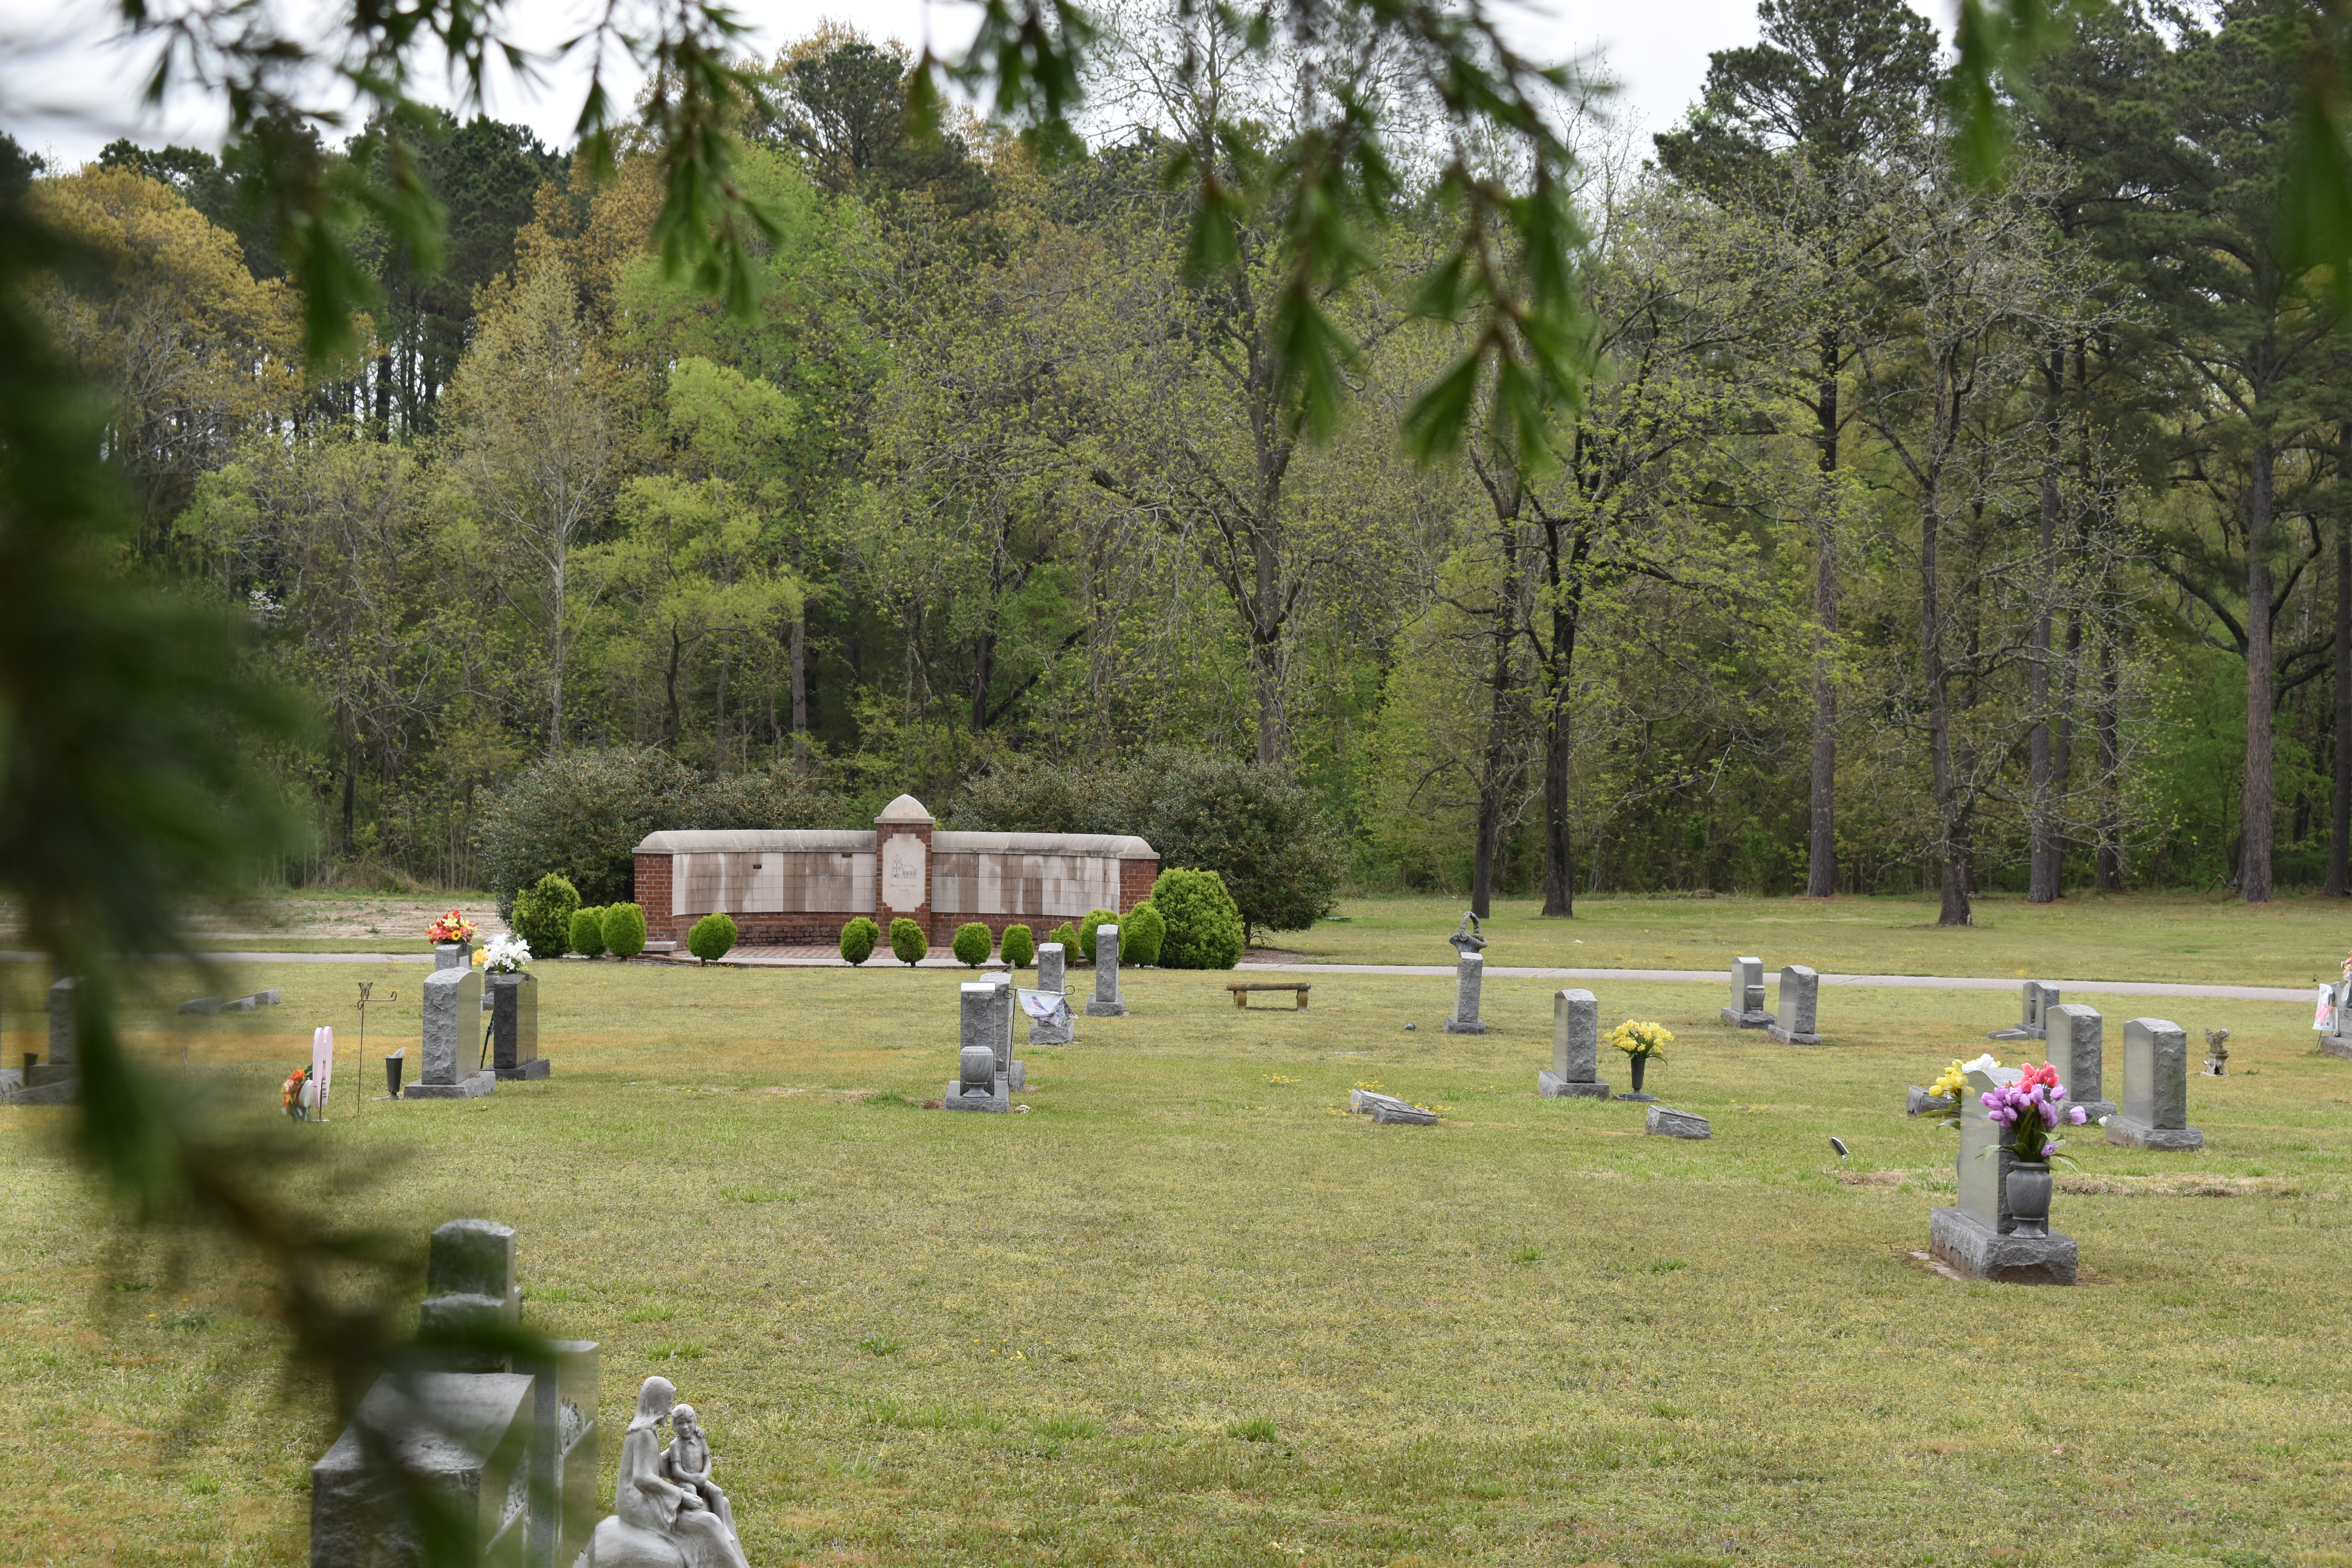 A view towards the columbarium